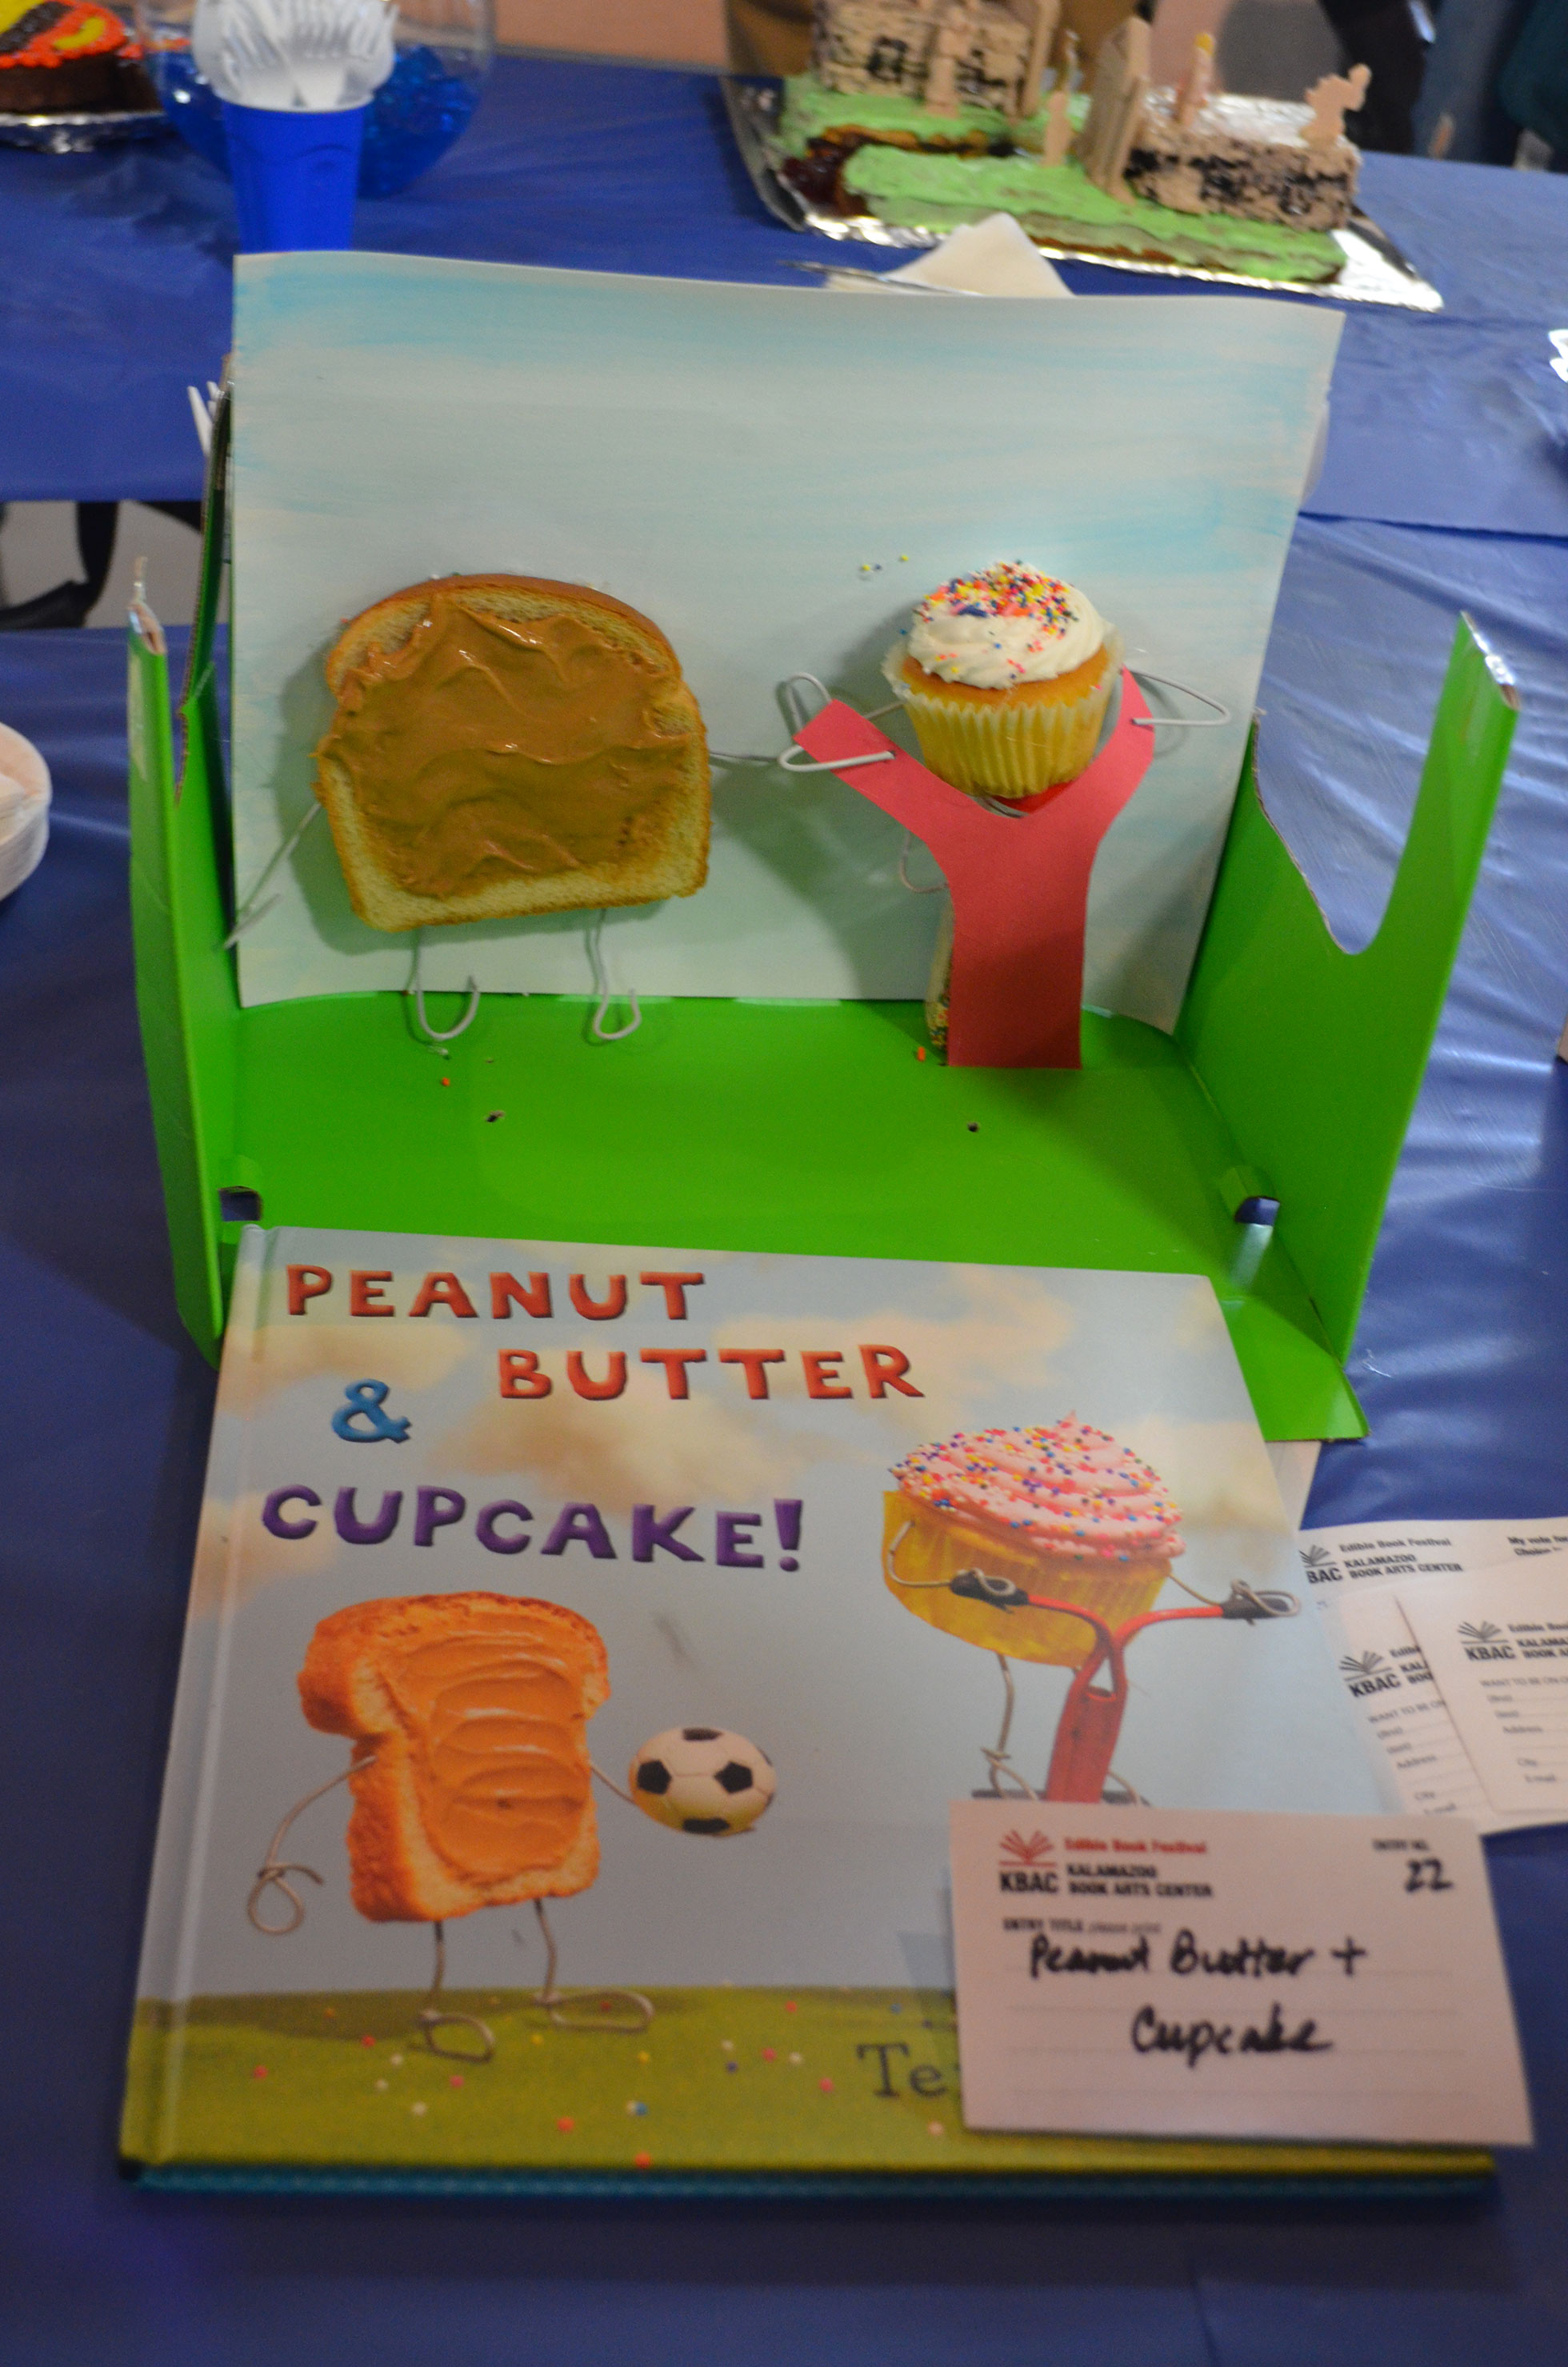 """Peanut Butter and Cupcake"" by Melanie Bryce; 2016 Edible Book"